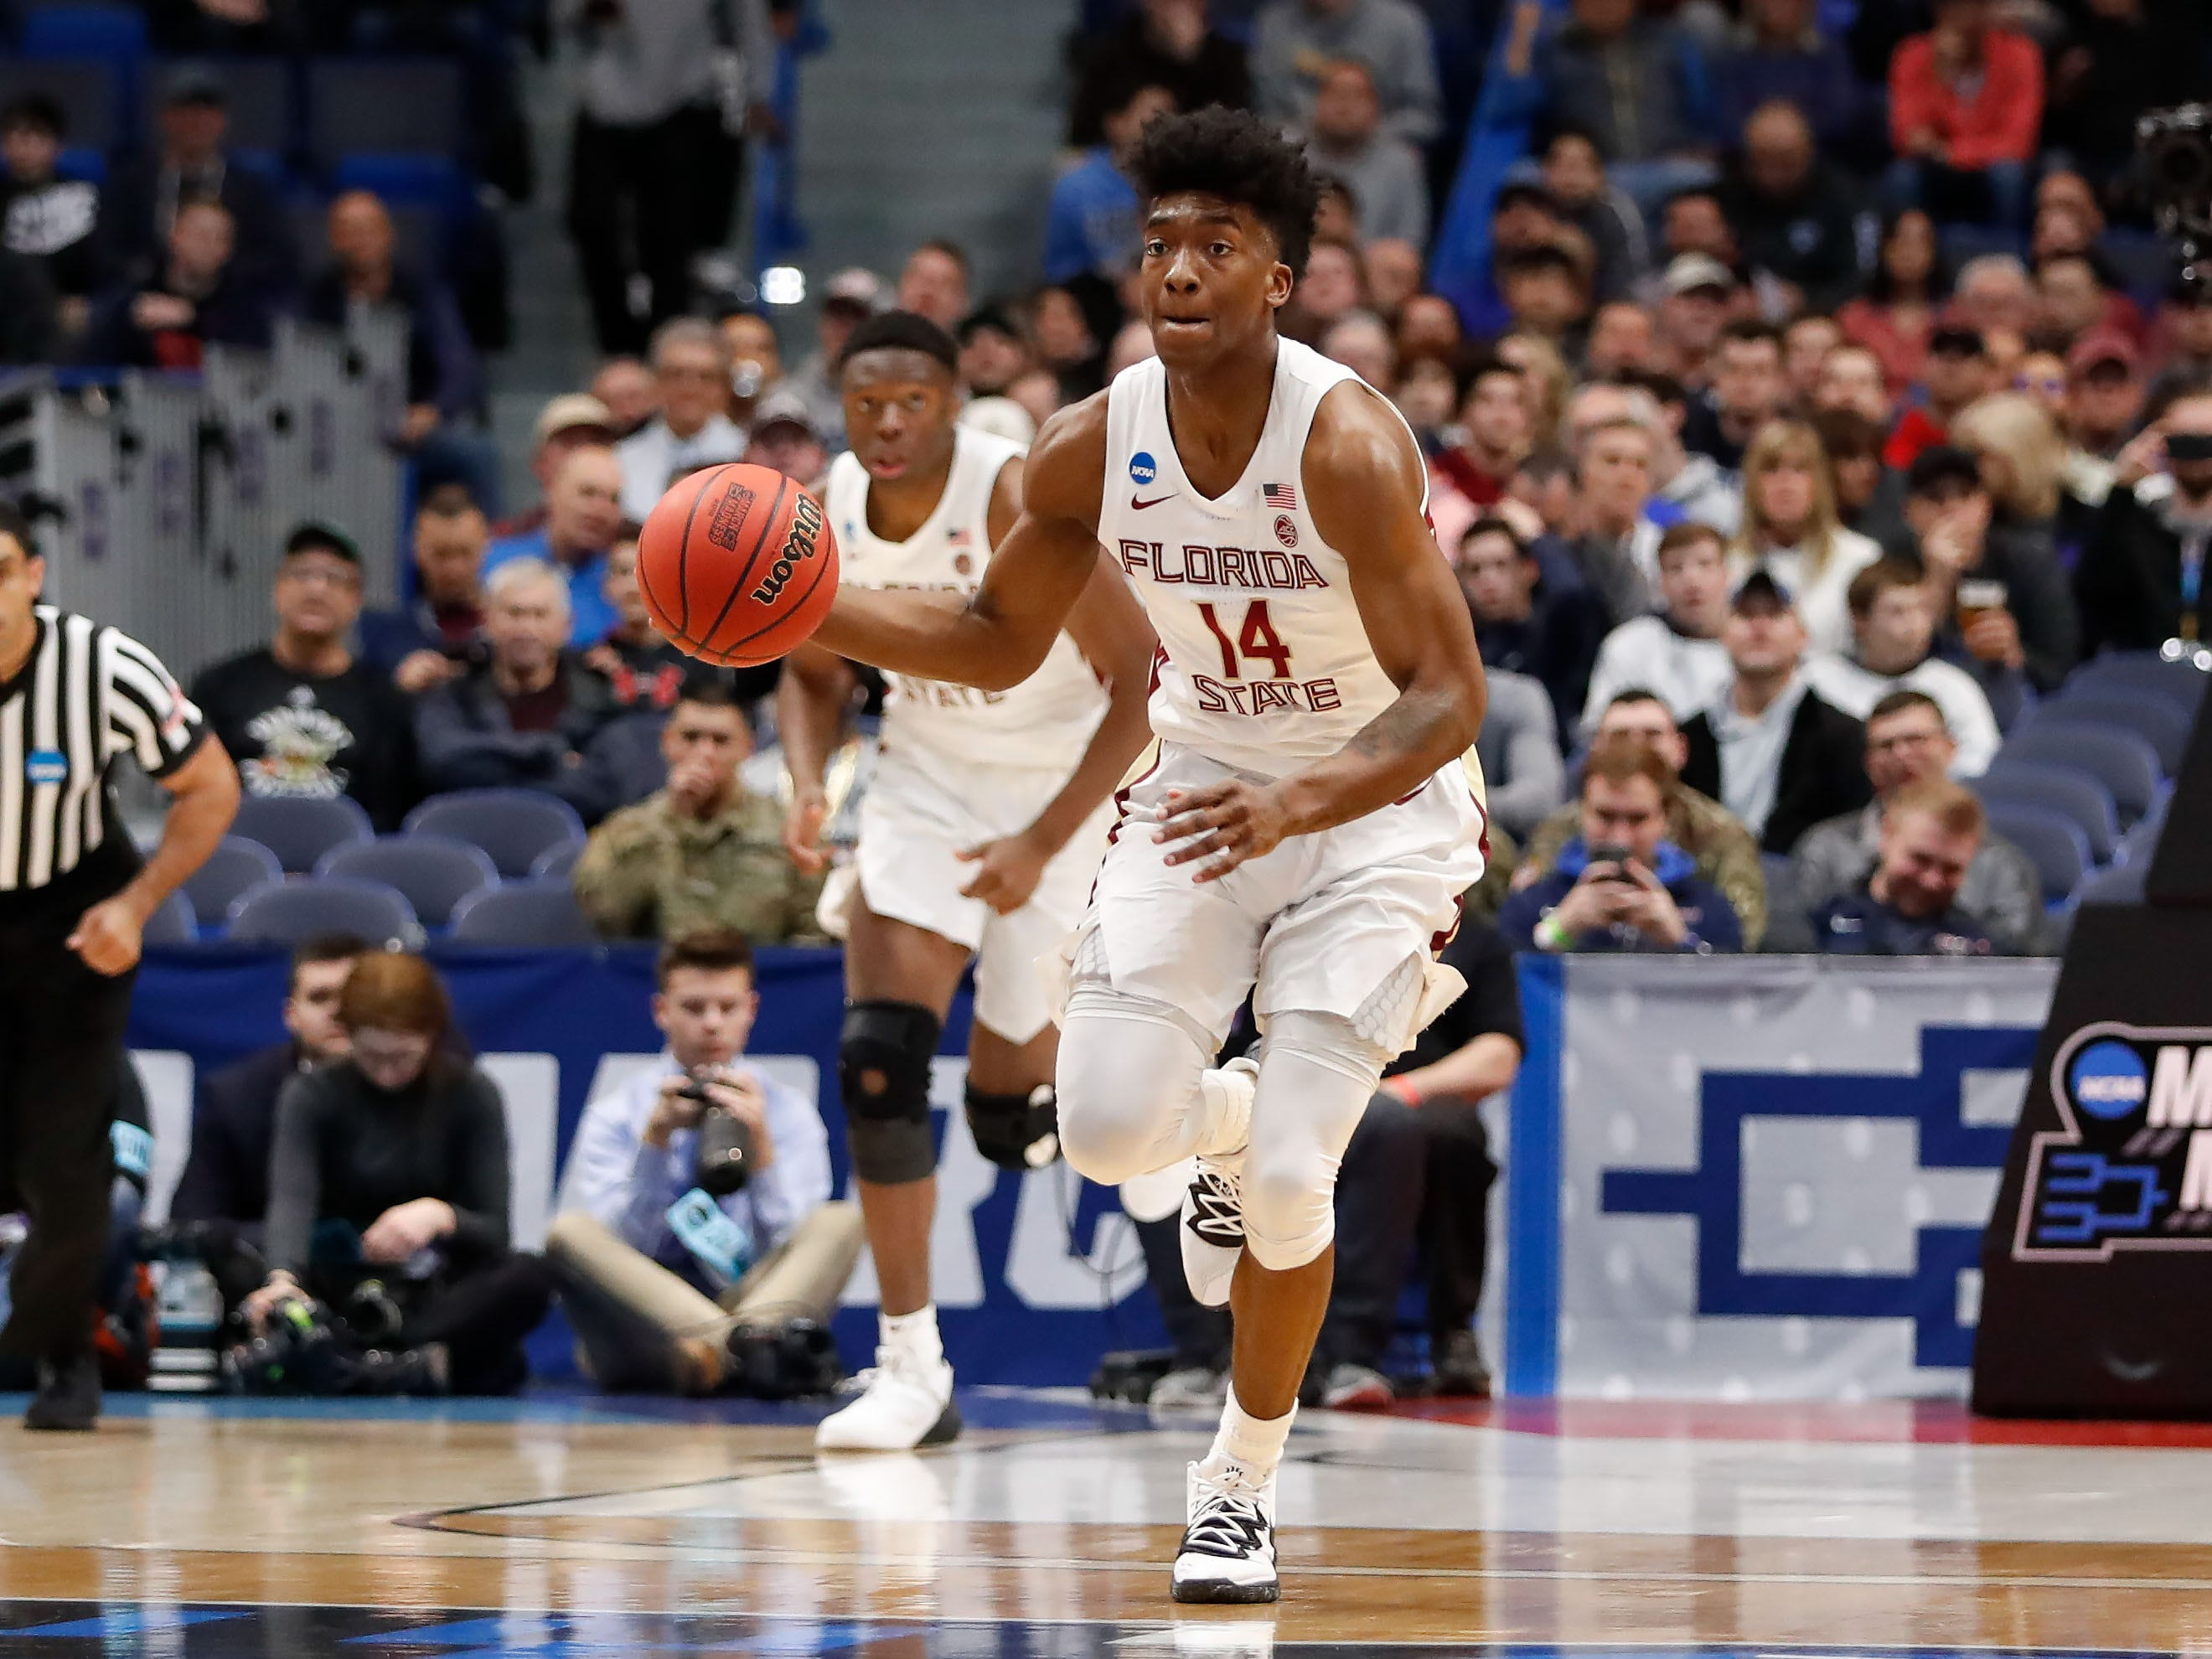 Mar 21, 2019; Hartford, CT, USA; Florida State Seminoles guard Terance Mann (14) dribbles the ball up the court during the first half of a game against the Vermont Catamounts in the first round of the 2019 NCAA Tournament at XL Center. Mandatory Credit: David Butler II-USA TODAY Sports